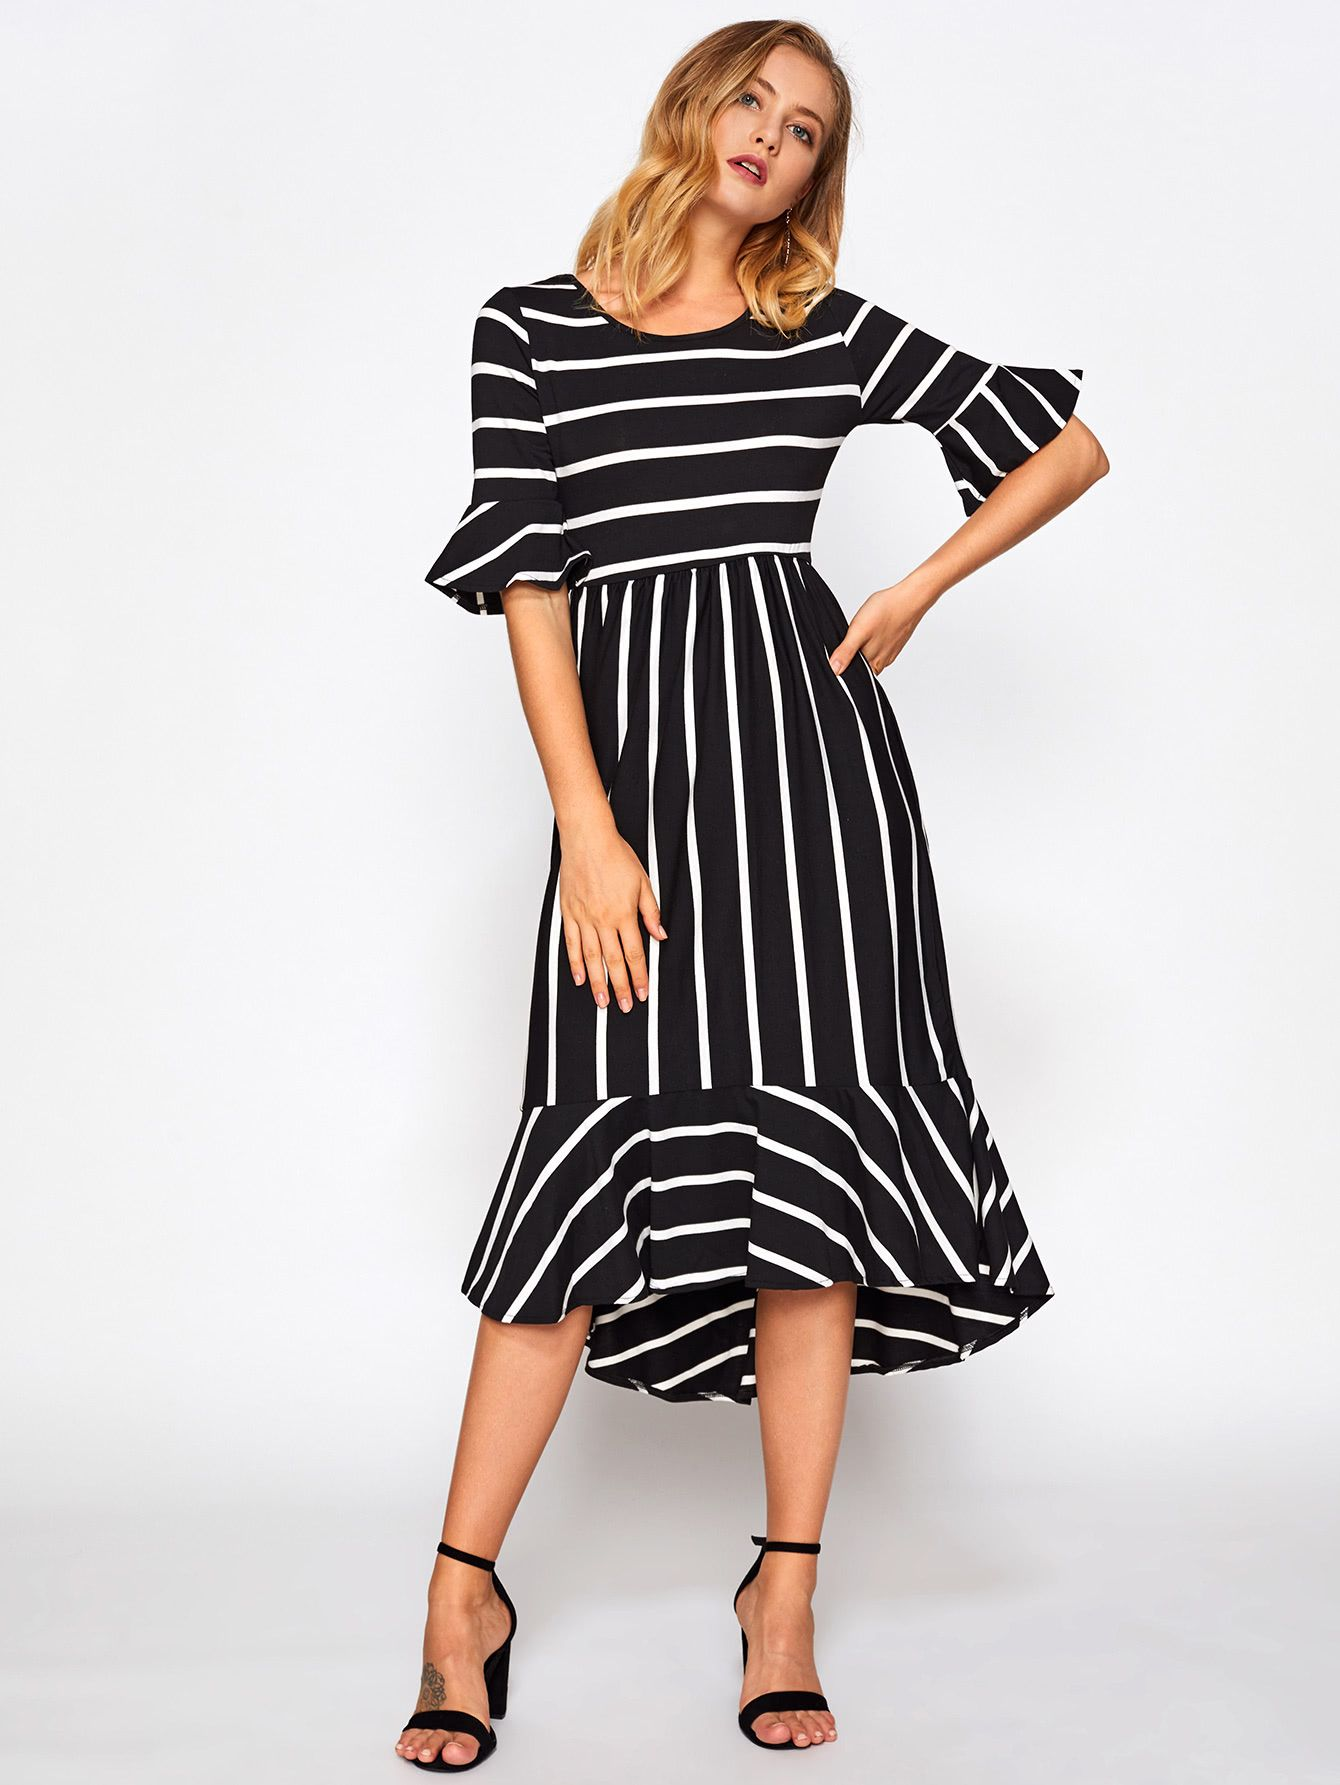 76c1acca8d Shop Fluted Sleeve Frill Hem Striped Dress online. SheIn offers Fluted  Sleeve Frill Hem Striped Dress   more to fit your fashionable needs.